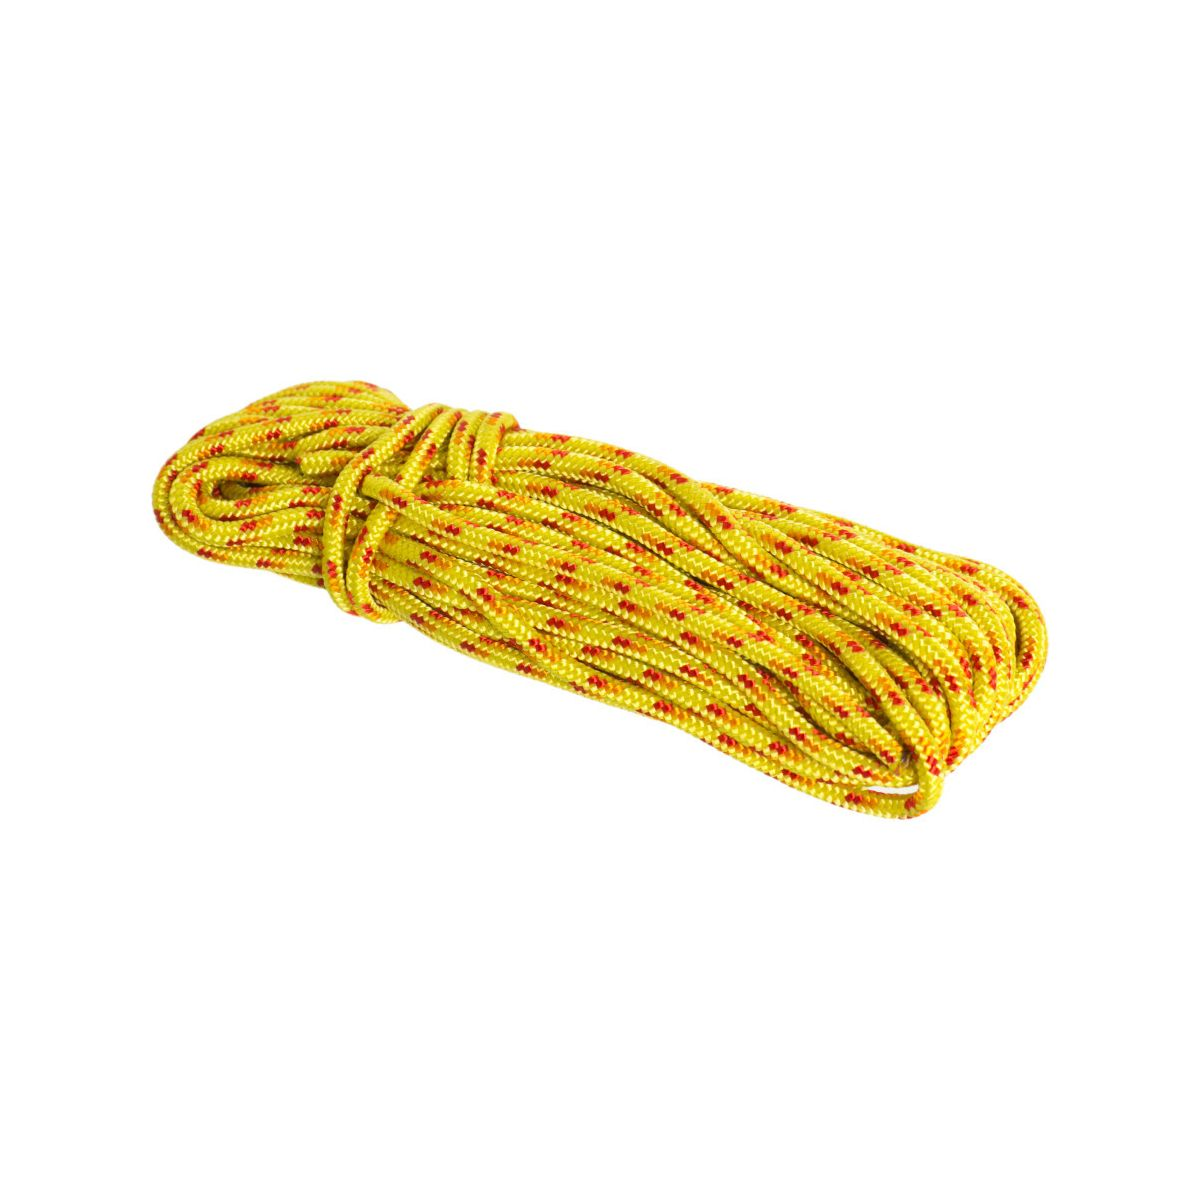 Edelweiss Cord 4mm